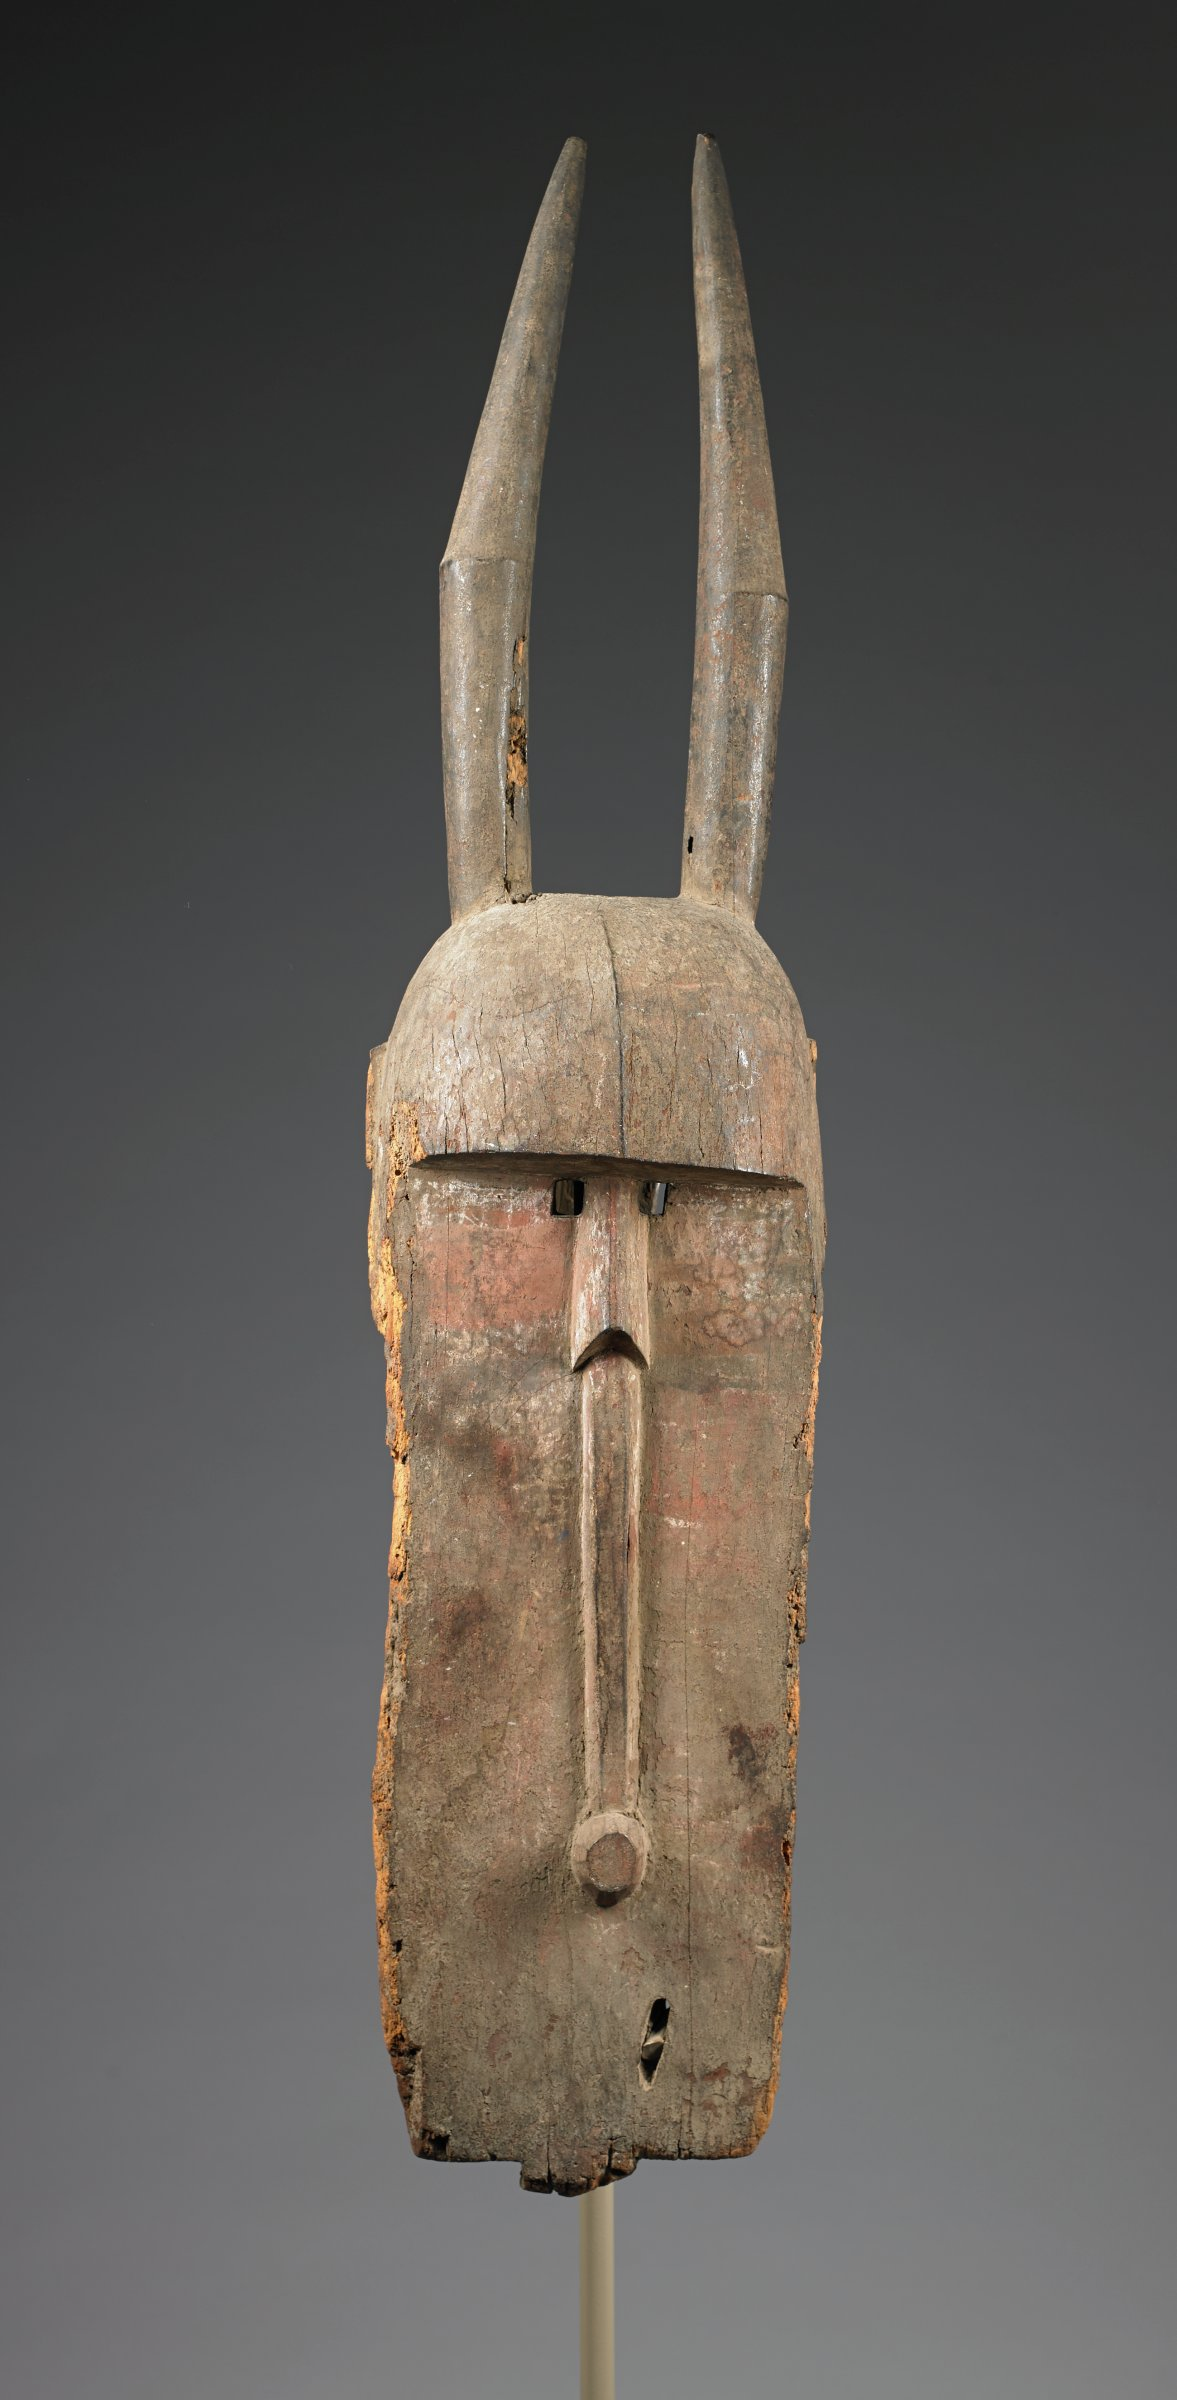 Helmet mask composed of long plank, heavy, hemispherical brow ridge, and tall, vertical, jointed horns. Small square eyes just below brow ridge on either side of the nose are pierced through the plank. Plank divided vertically by raised ridge extending from nose to raised umbilicus, located in bottom third of mask. No mouth is evident. Mask bears traces of symmetrical geometric patterns in red, black and white pigments.A sacred mask owned and worn solely by blacksmiths among the Bobo people; associated with the cult of Dwo.